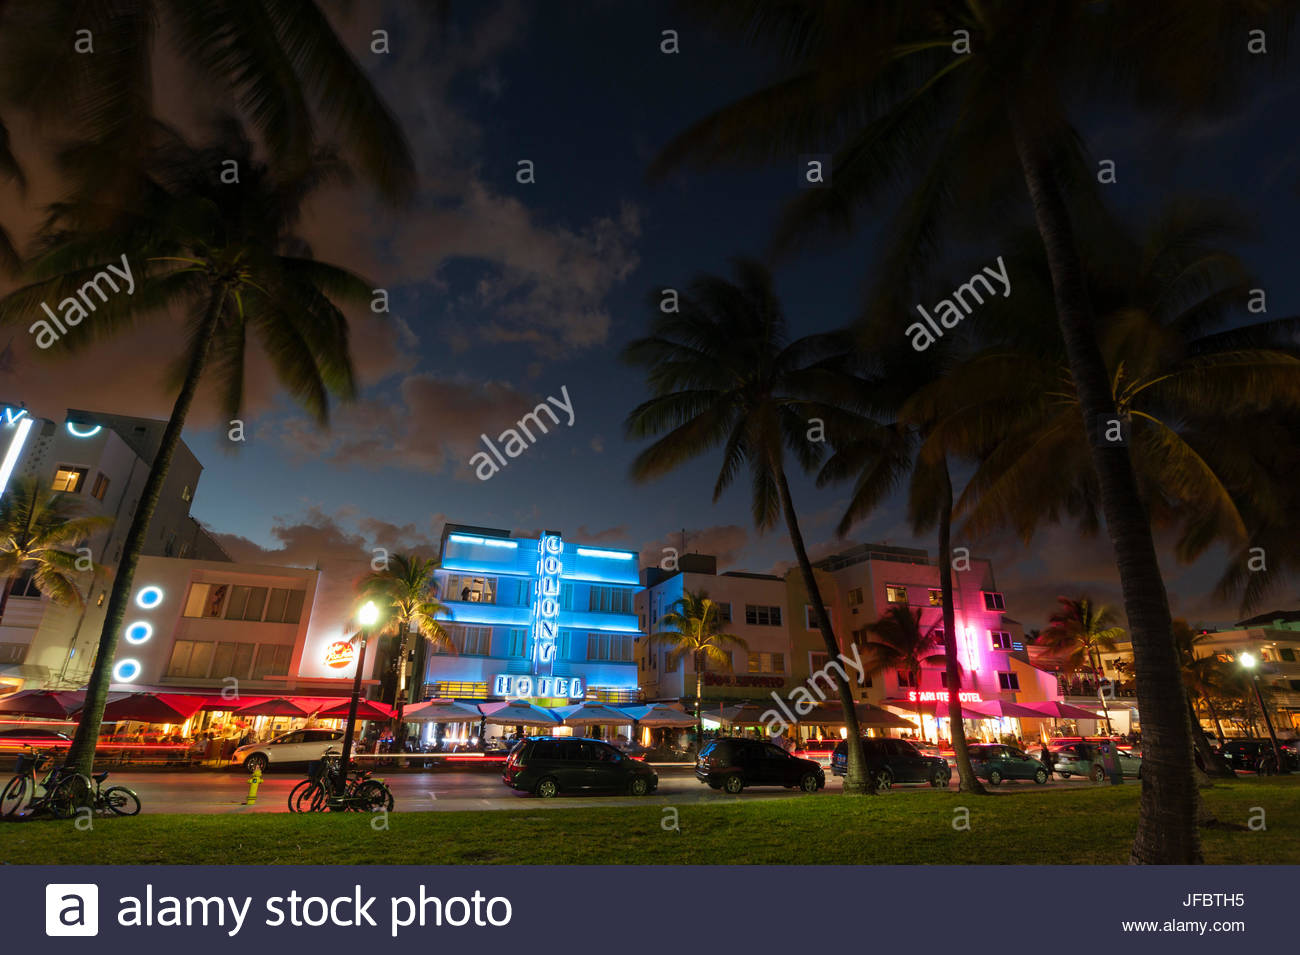 The Colony Hotel and Ocean Drive at dusk. - Stock Image